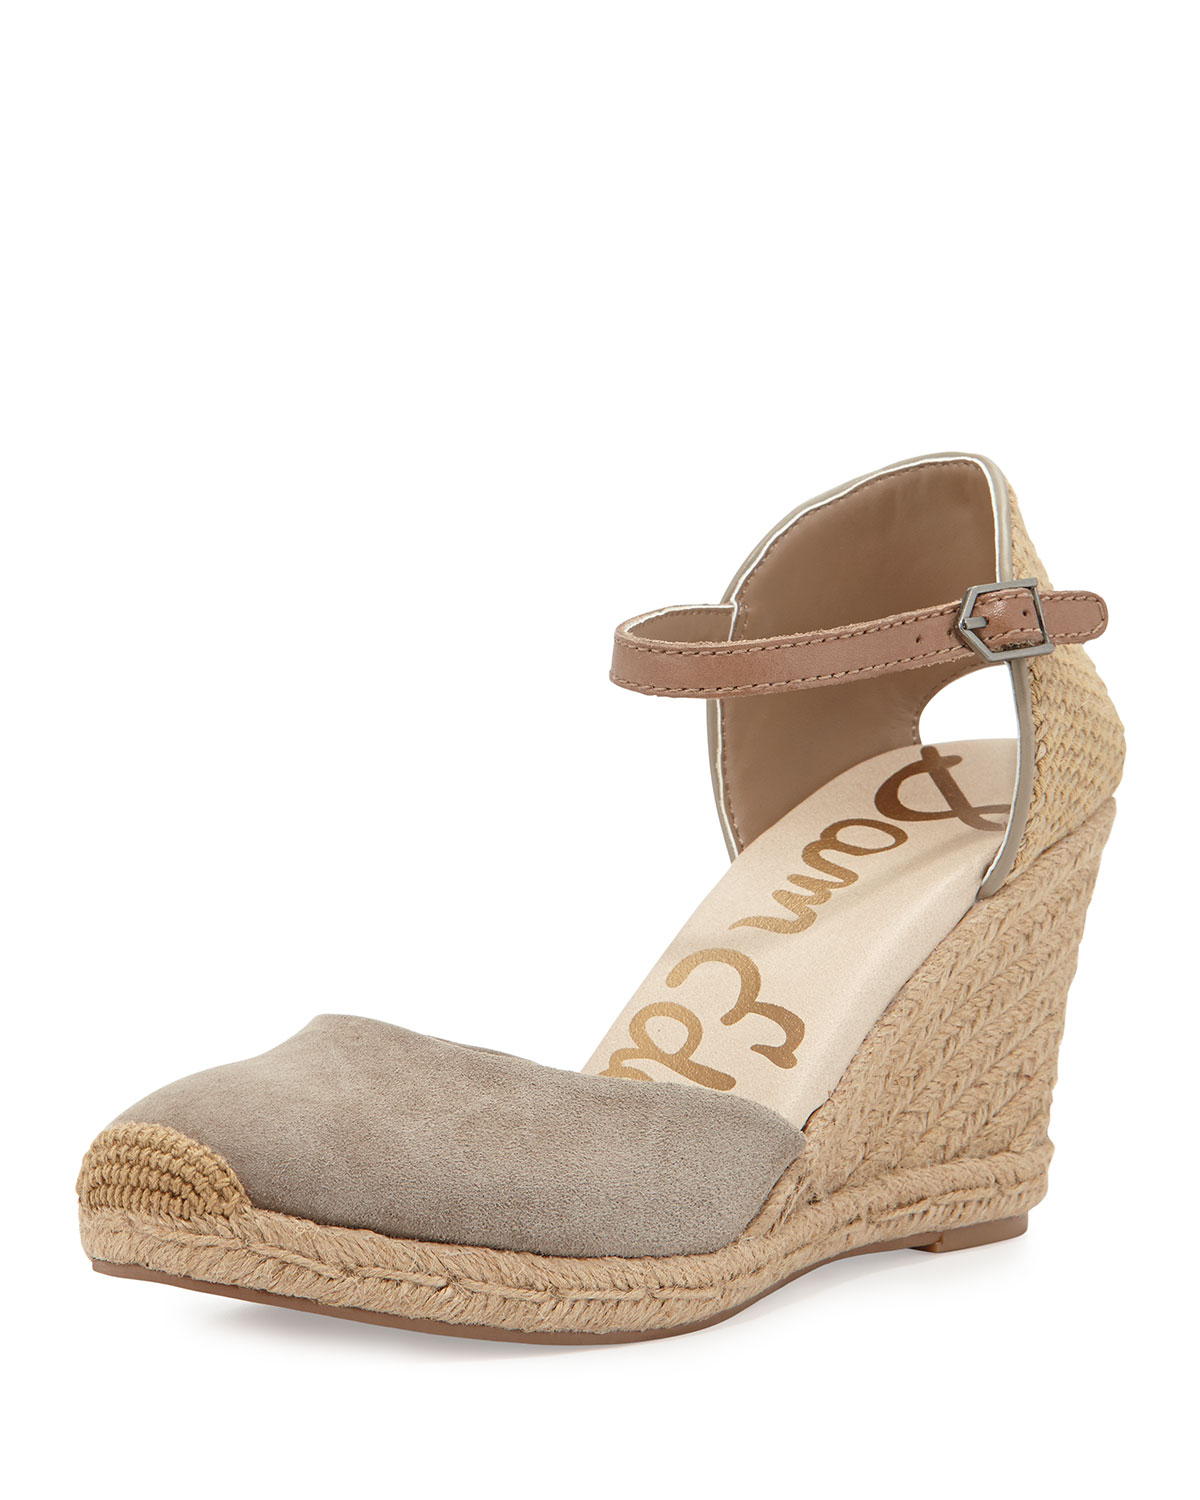 594f7bdf076e Lyst - Sam Edelman Harmony Suede Espadrille Wedge in Natural